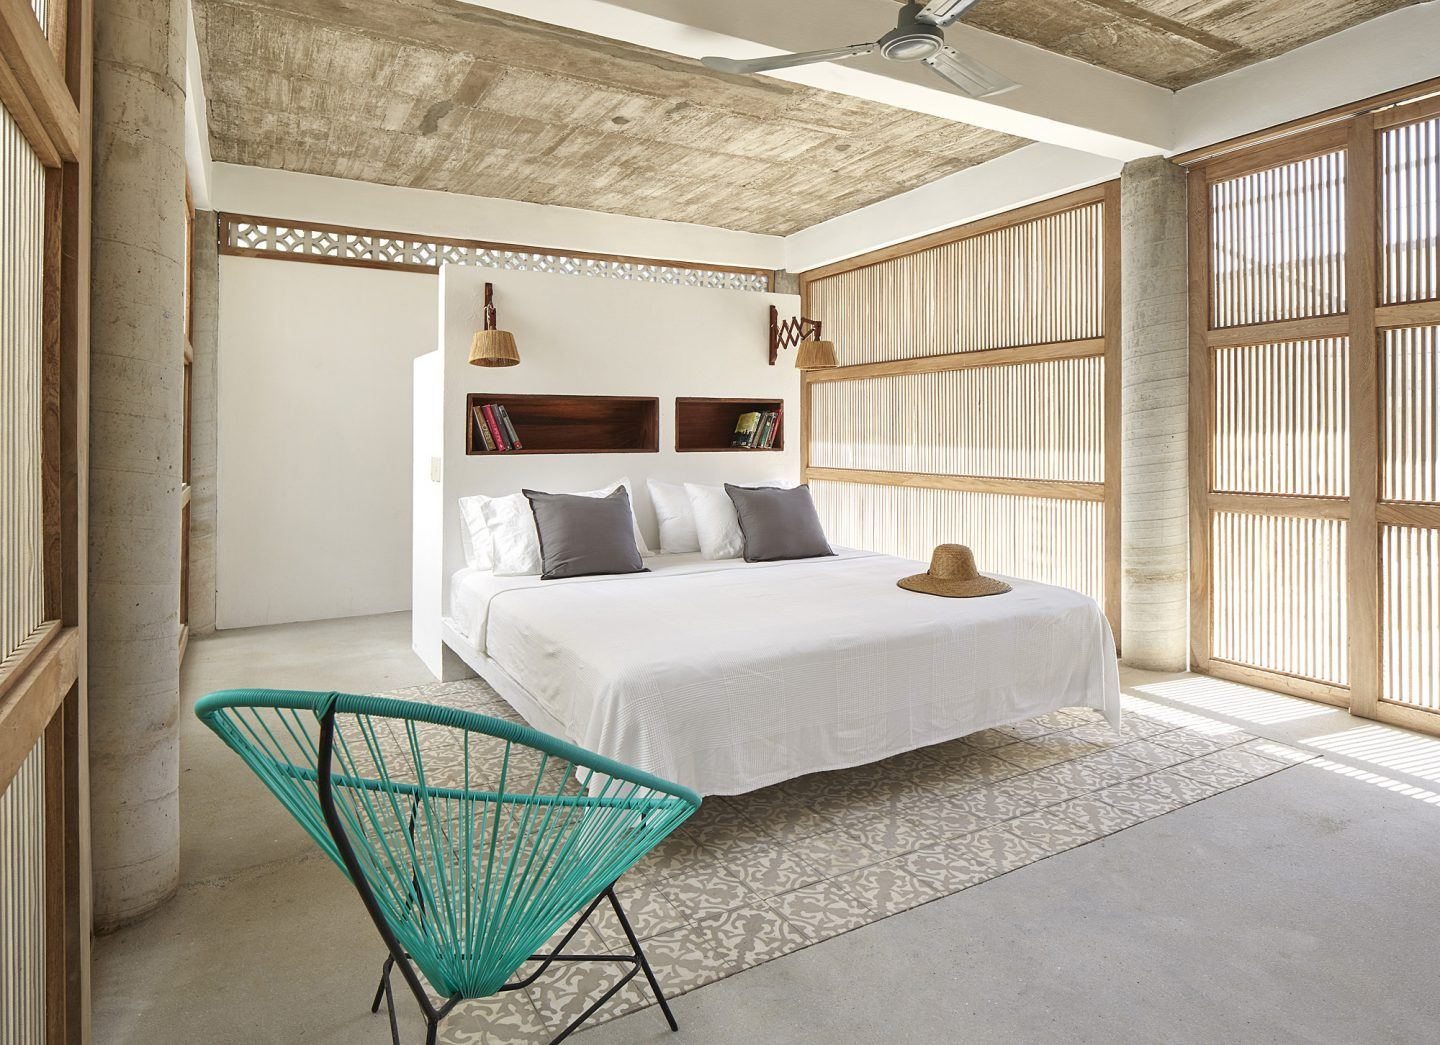 IGNANT-Travel-CasaCal-11